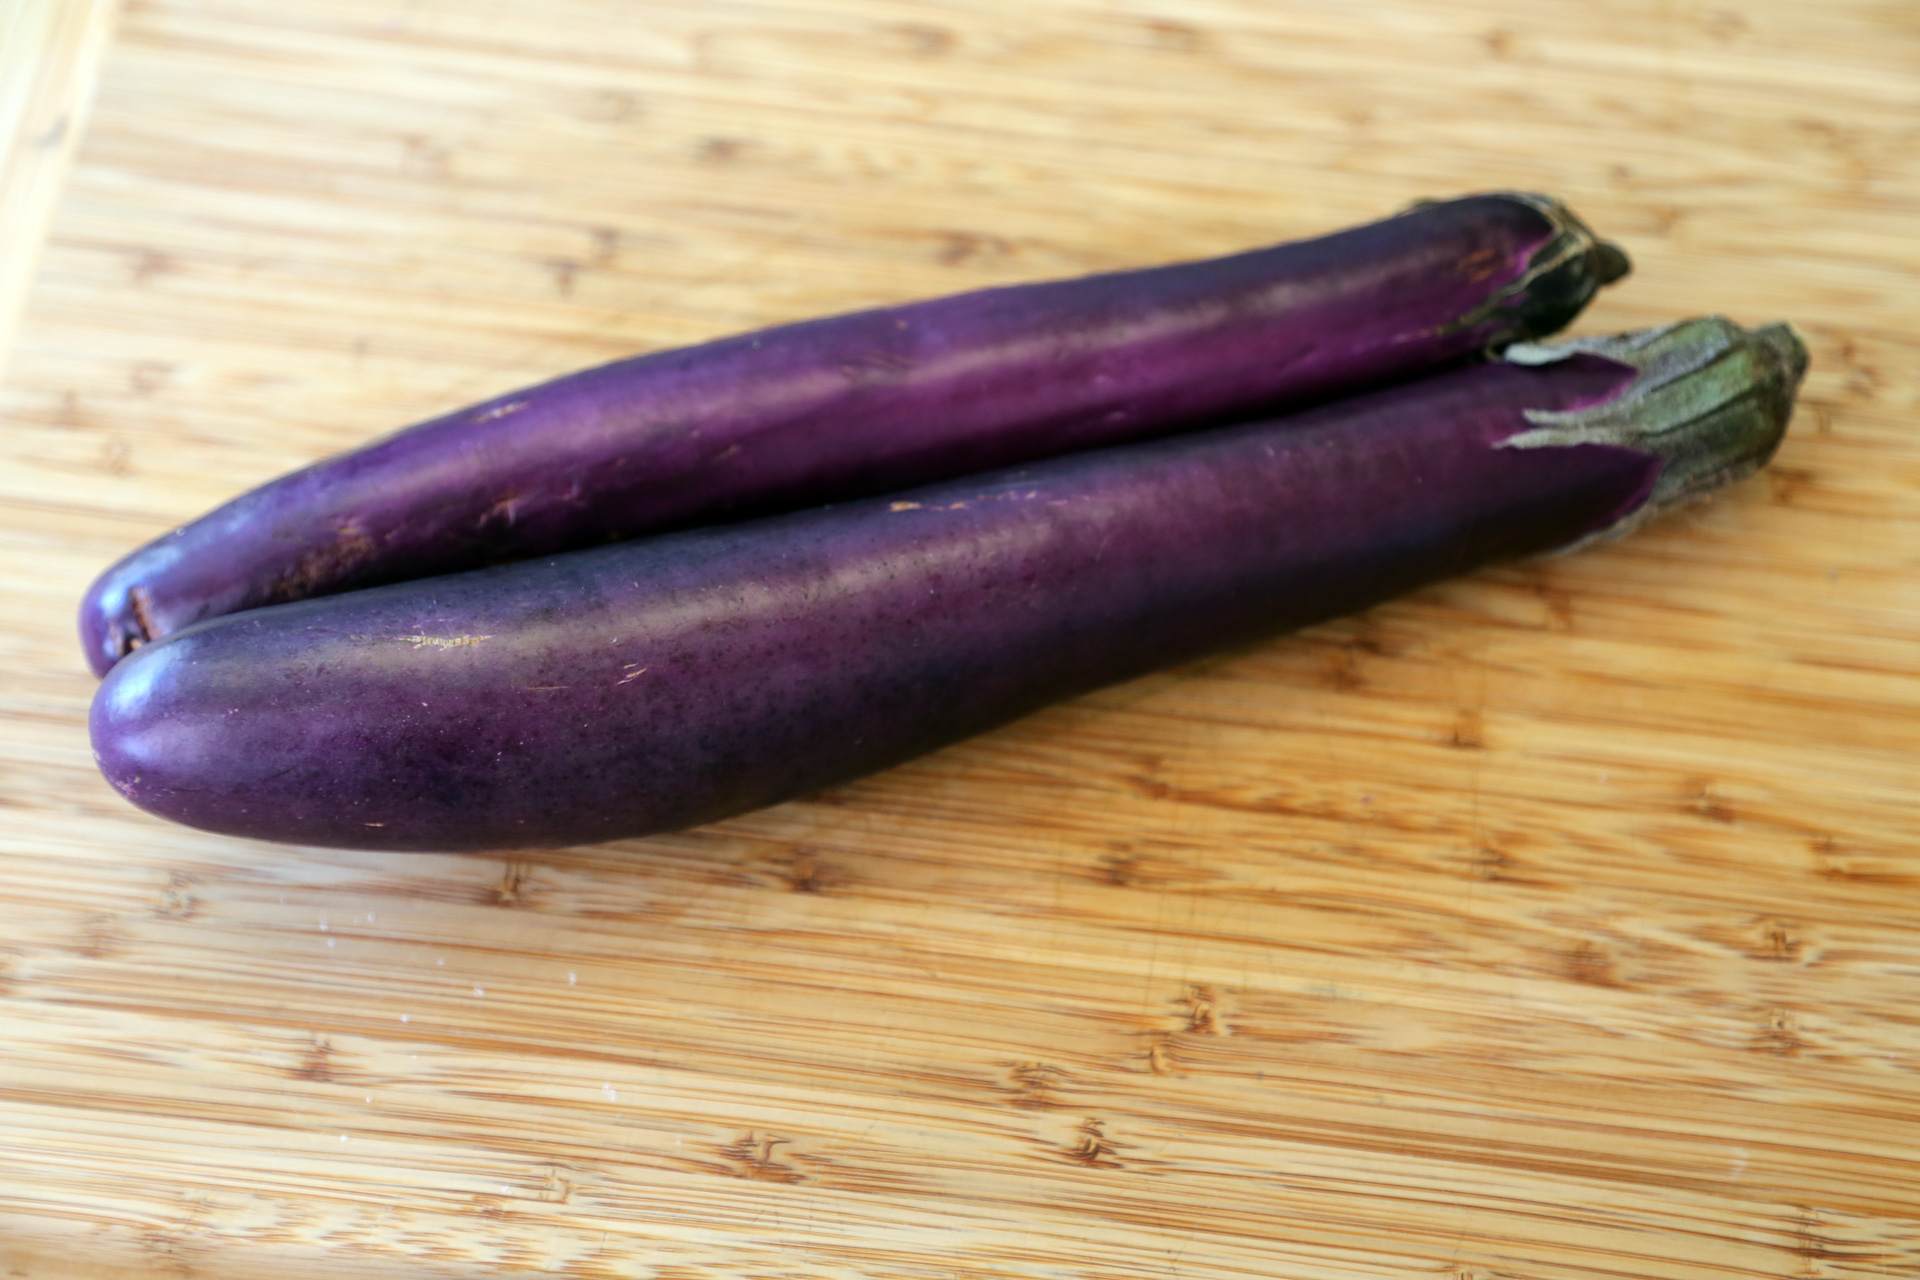 I love the sweetness of narrow Japanese eggplants, and chose those to slice into planks and grill.